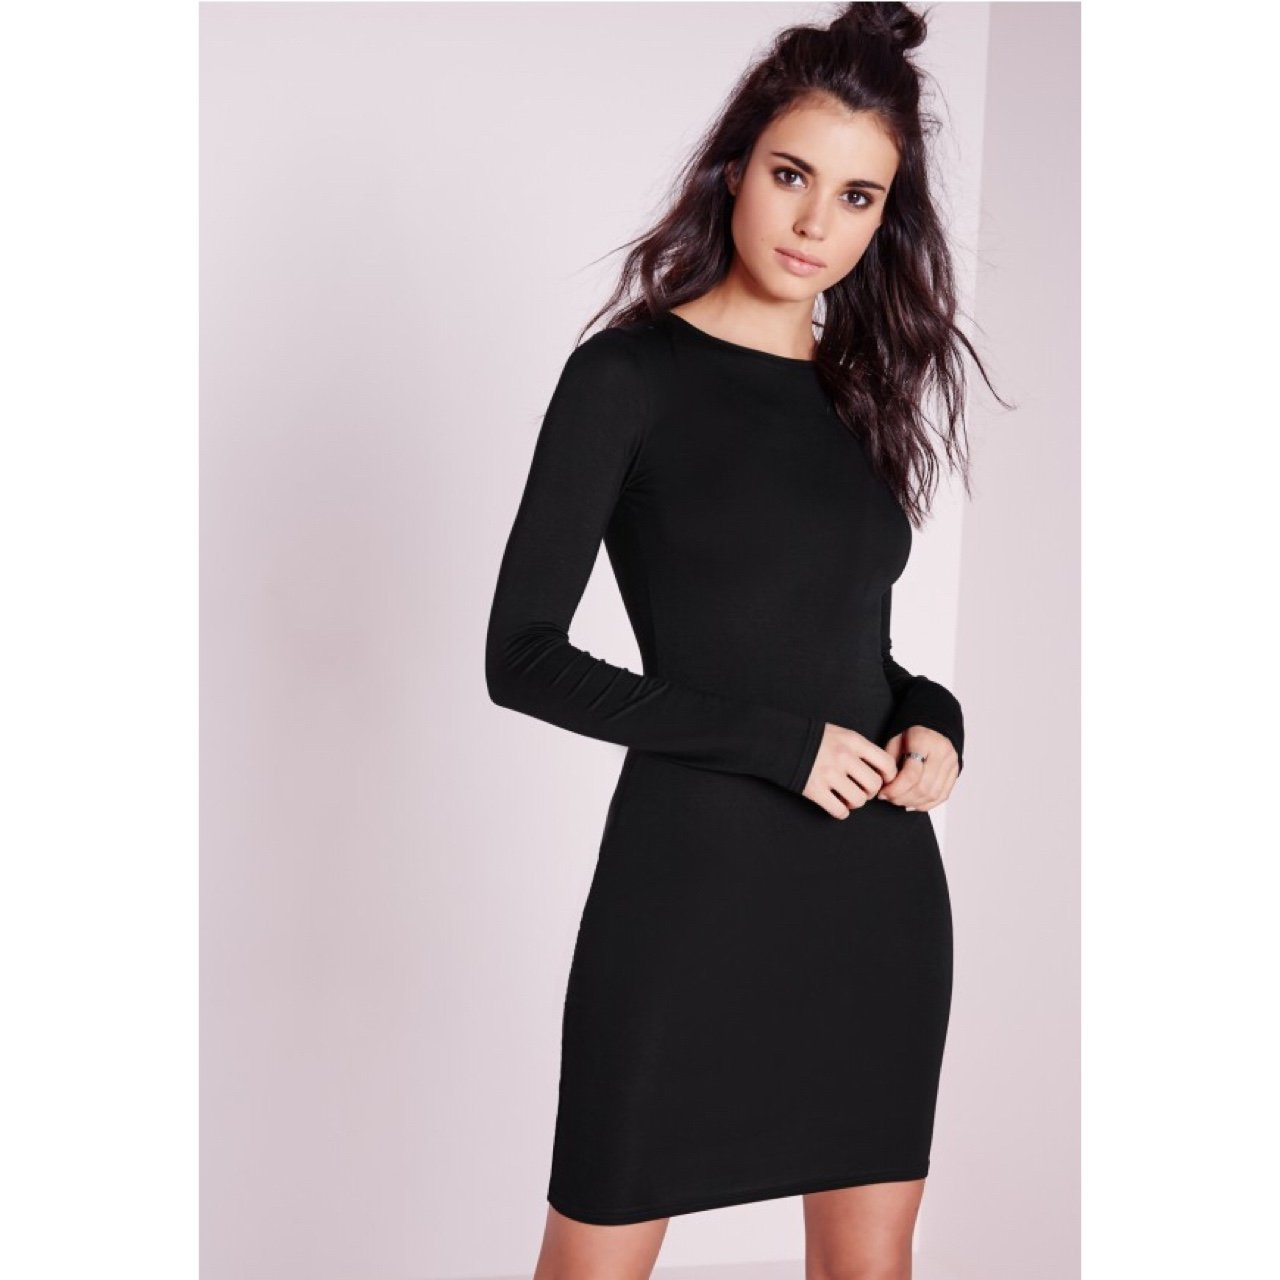 786720bc6593 @laurensw. last year. Brighton, The City of Brighton and Hove, UK. Black long  sleeve jersey bodycon dress.